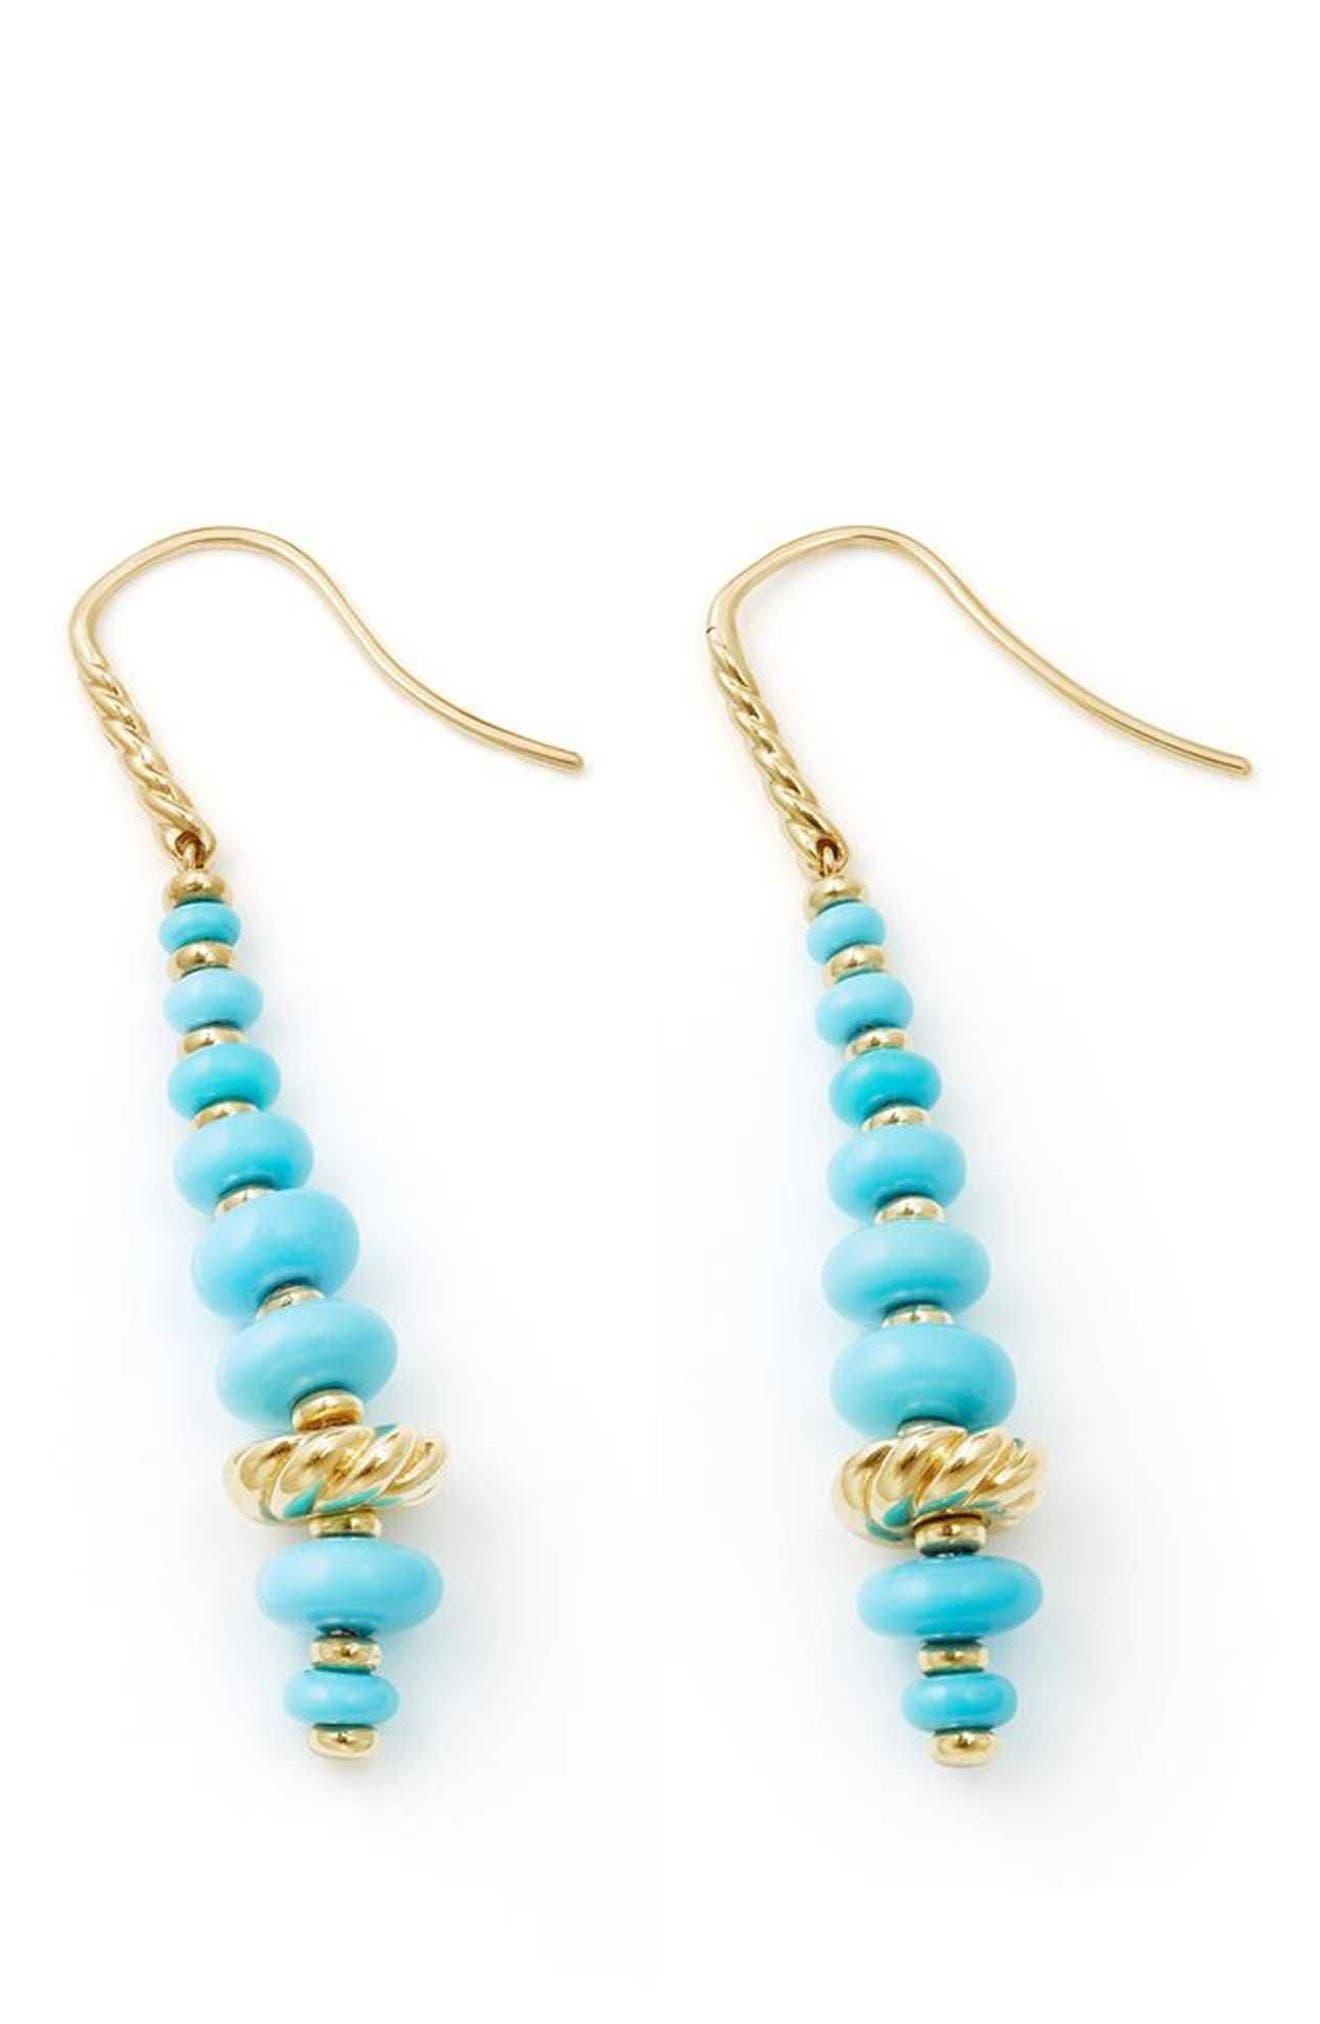 Rio Rondelle Drop Earrings in 18K Gold,                             Alternate thumbnail 2, color,                             Gold/ Turquoise